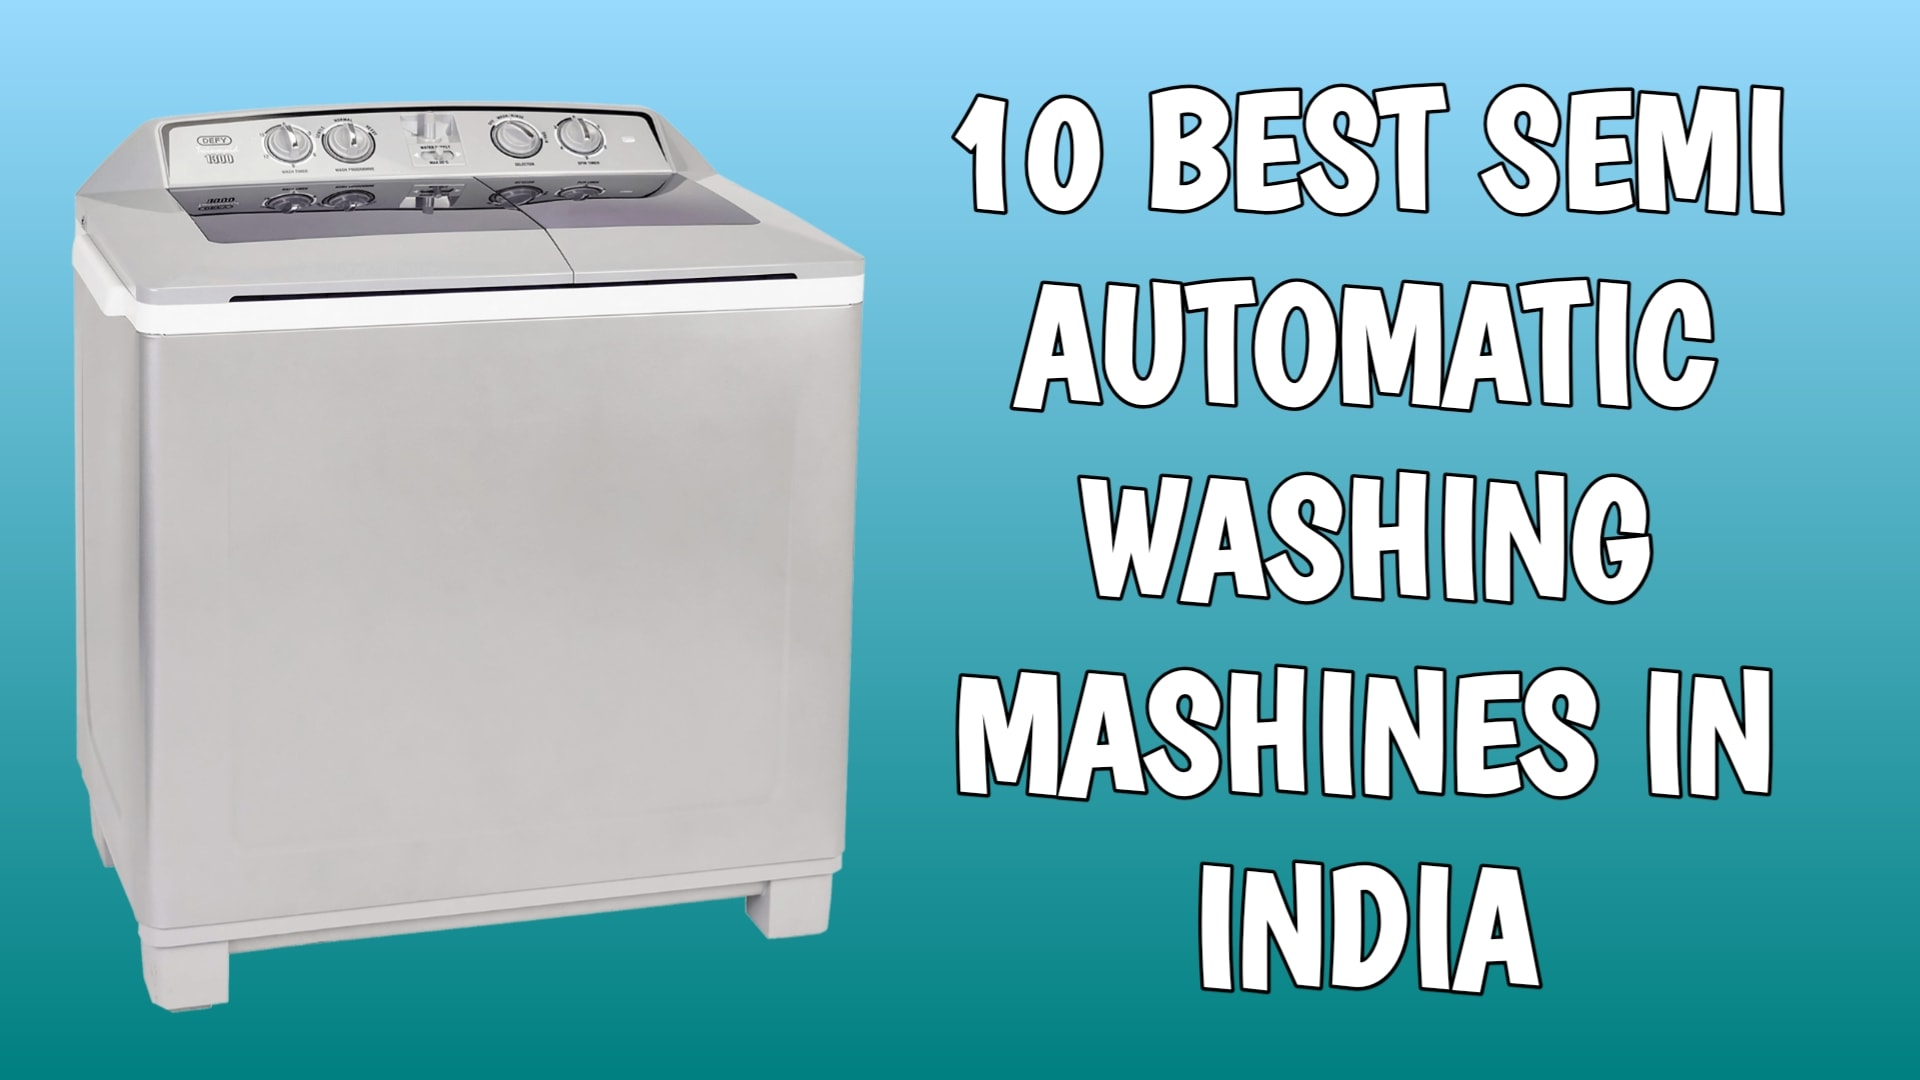 10 Best Semi Automatic Washing Machines in India 2020